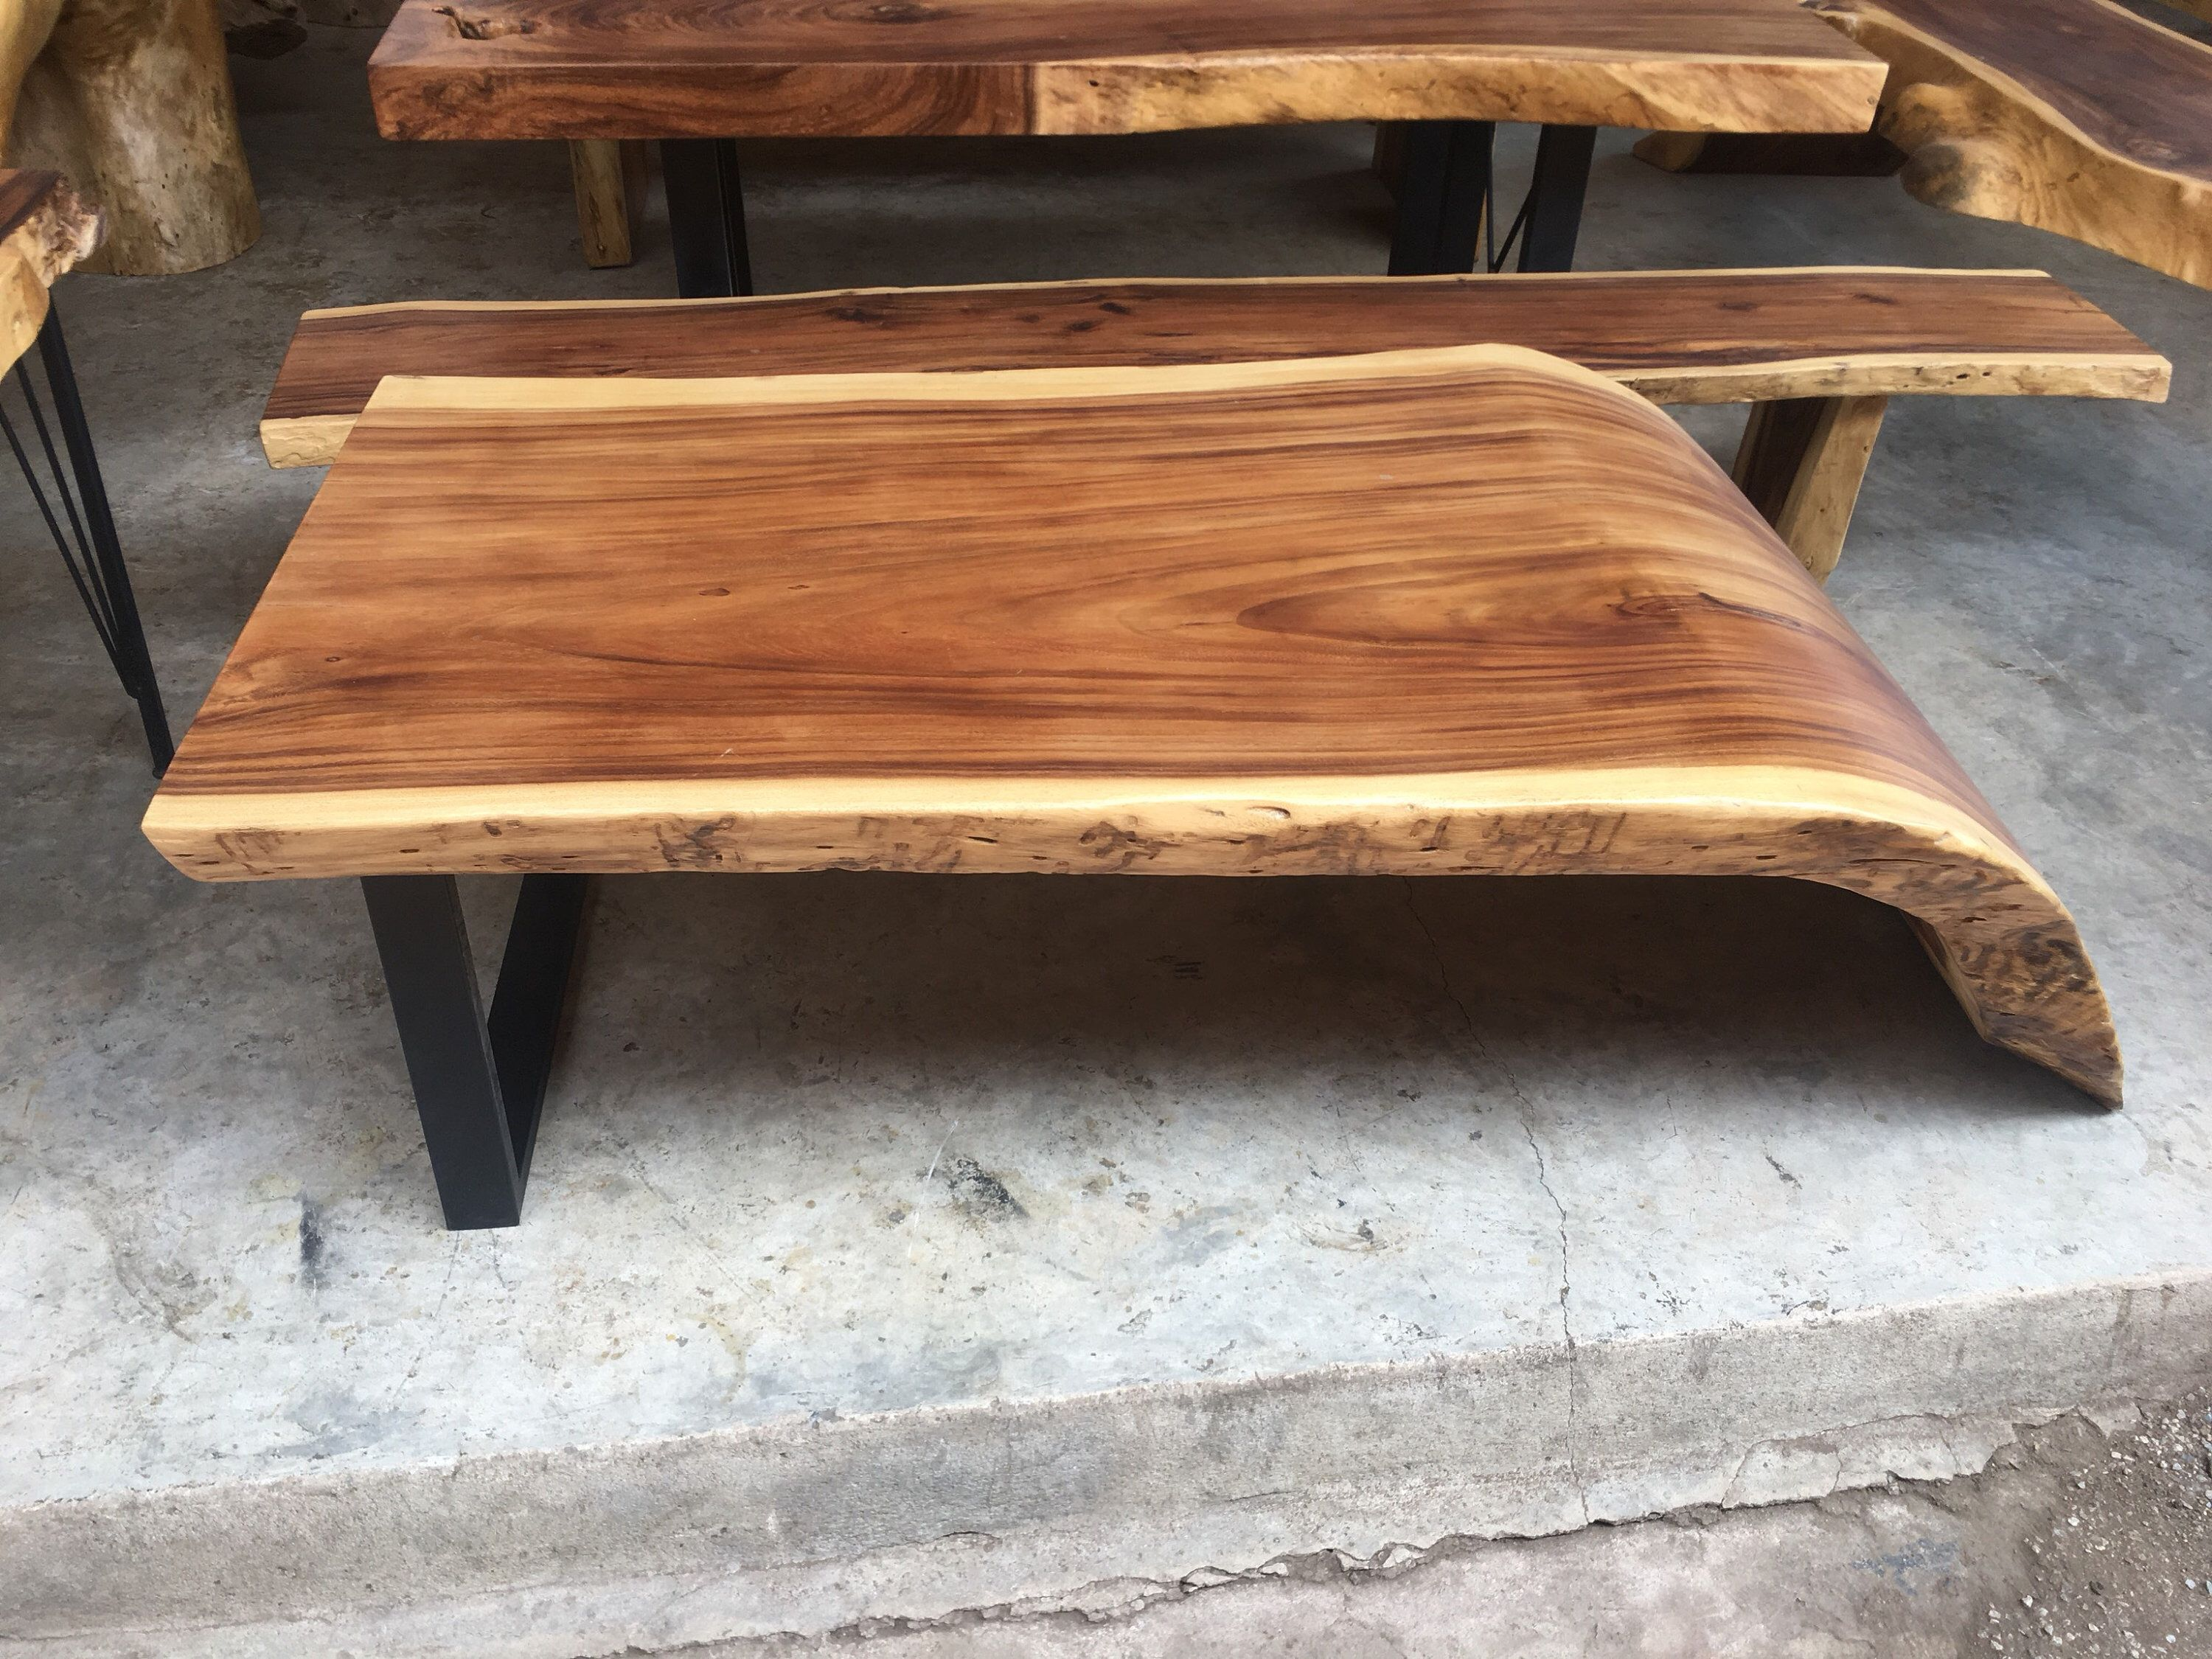 Live Edge Golden Acacia Wood Slab Coffee Table Natural Curve